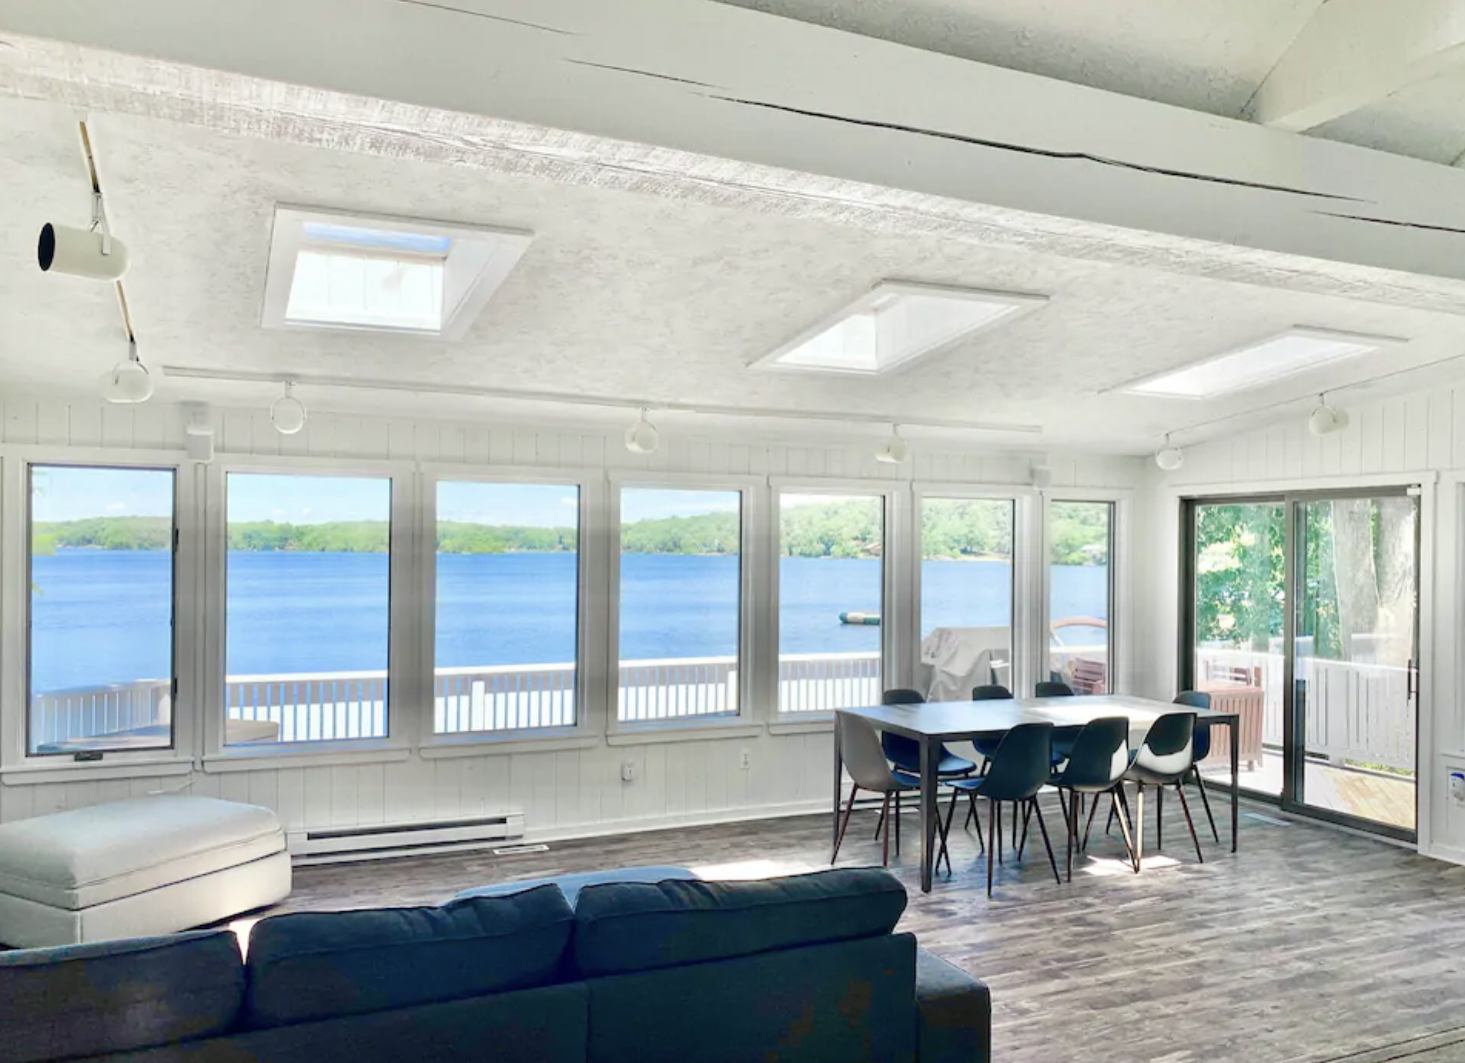 Forget The Resorts, Rent This Charming Waterfront Lakehouse In New Jersey Instead